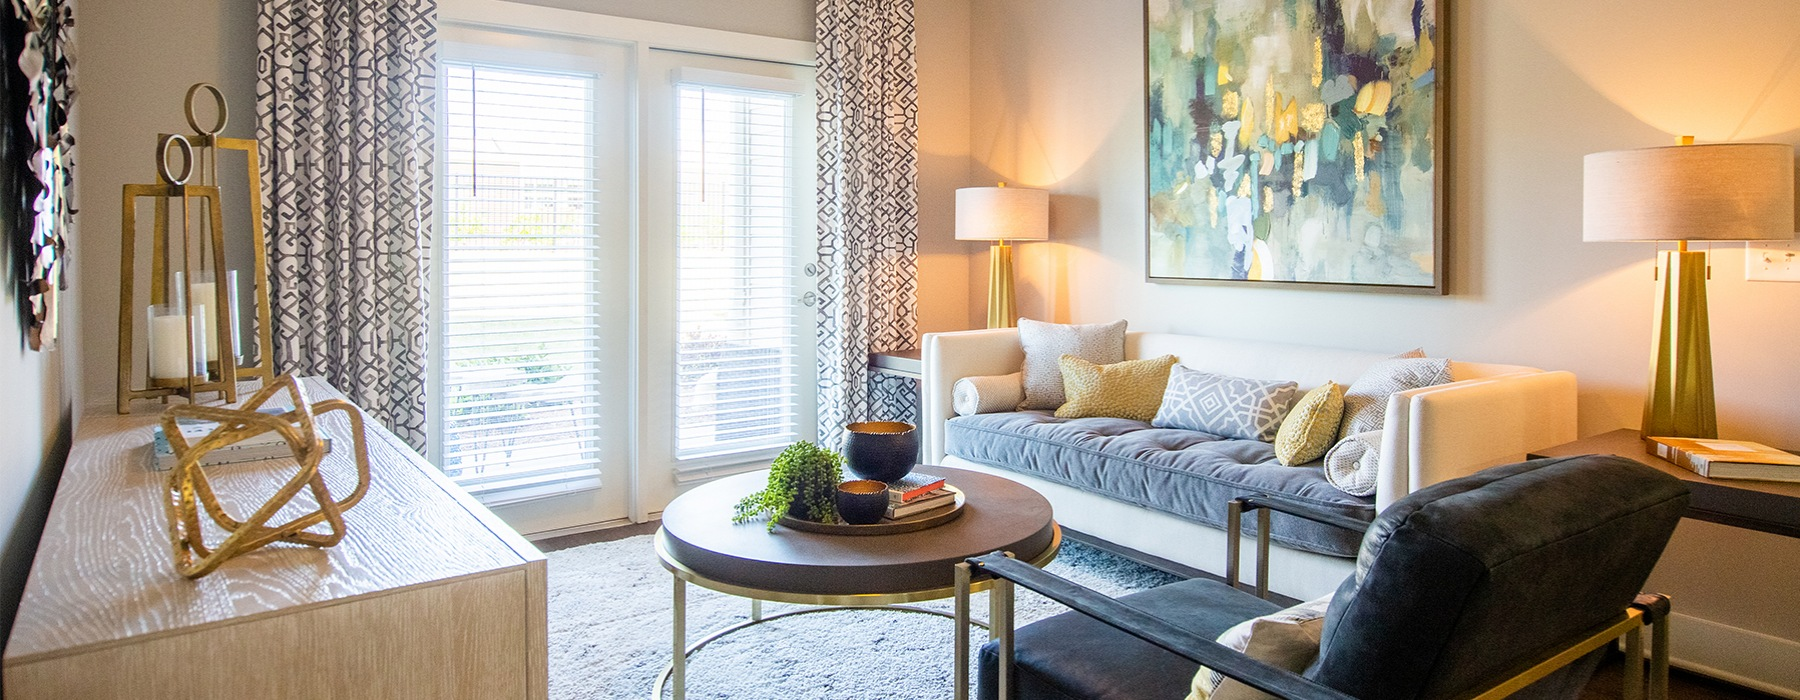 Spacious well lit living room with large french doors and beige walls.